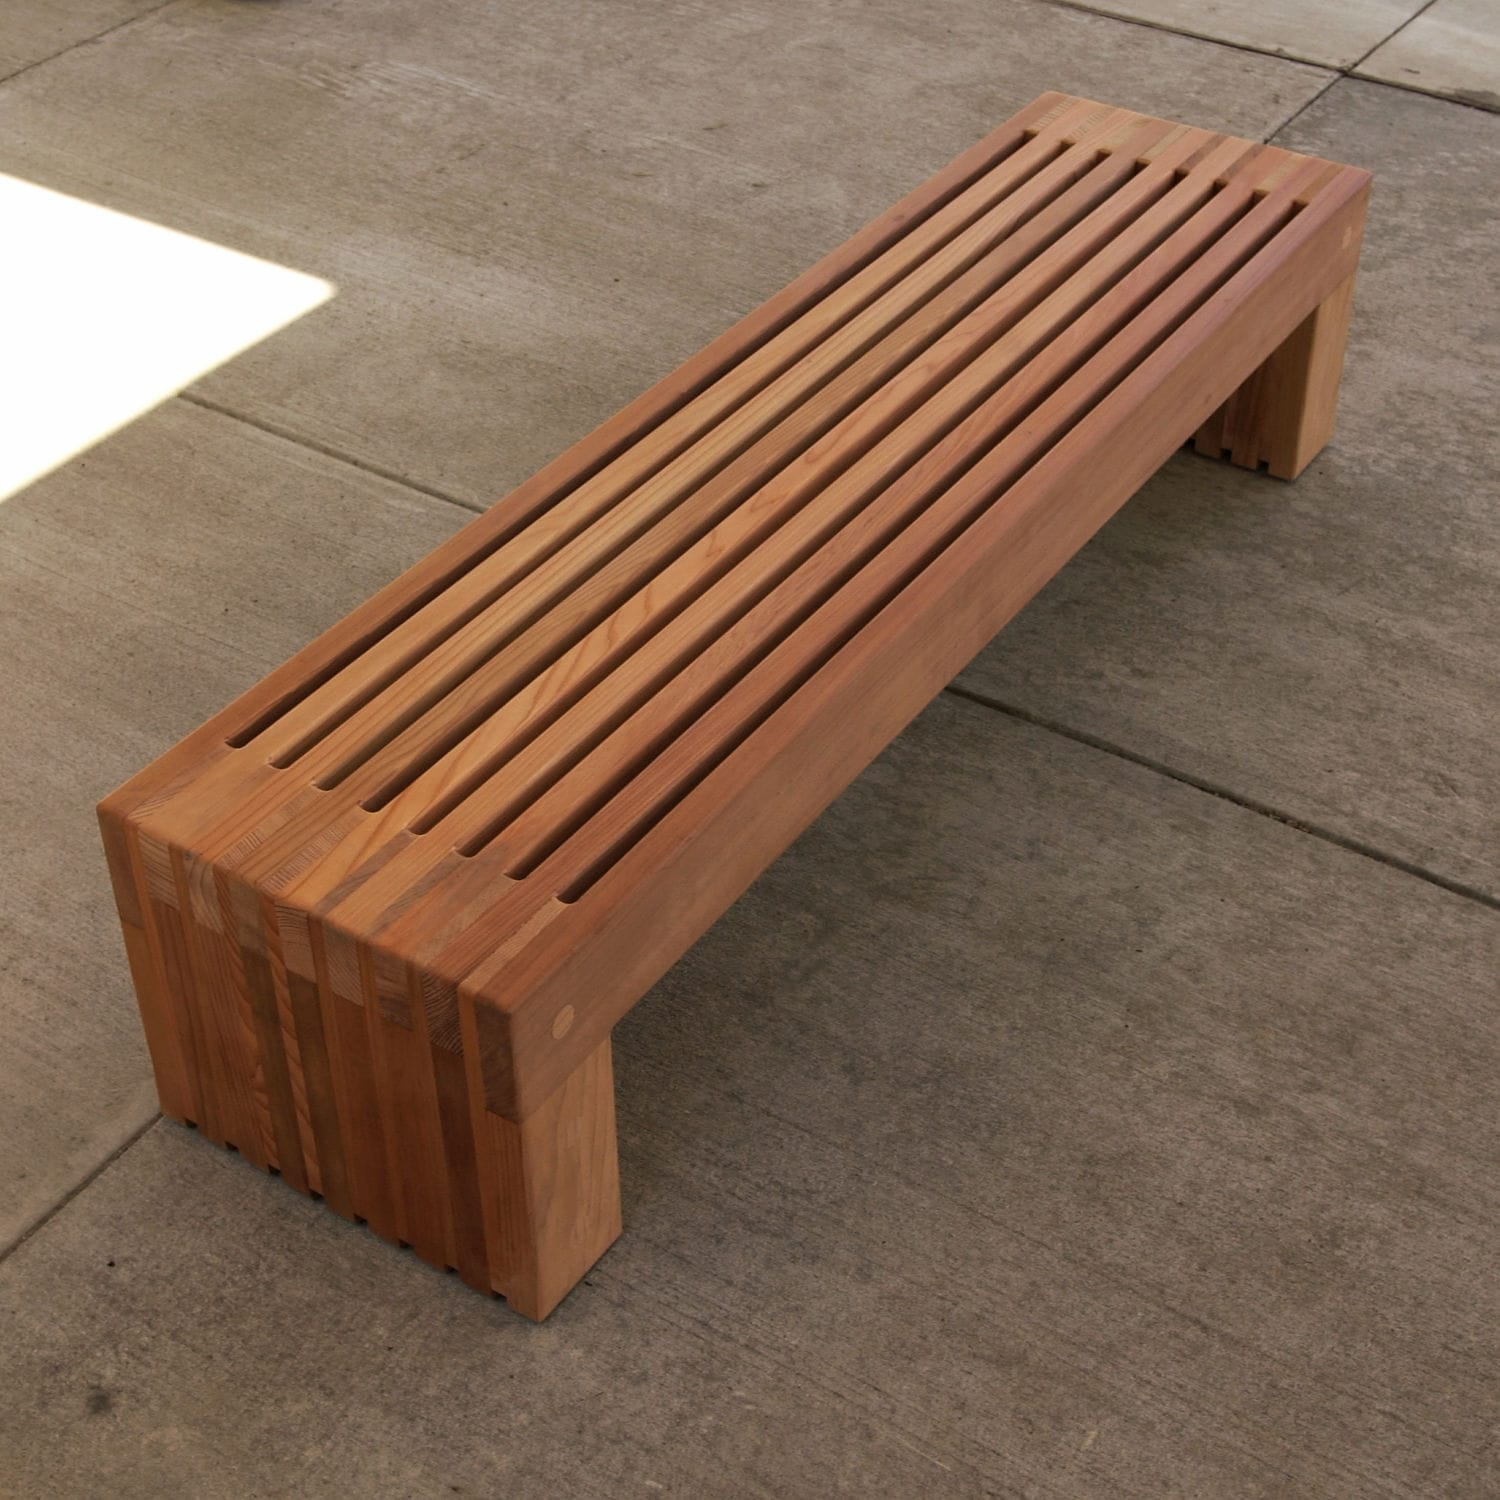 Public Bench Contemporary Wooden Palisade Landscapeforms